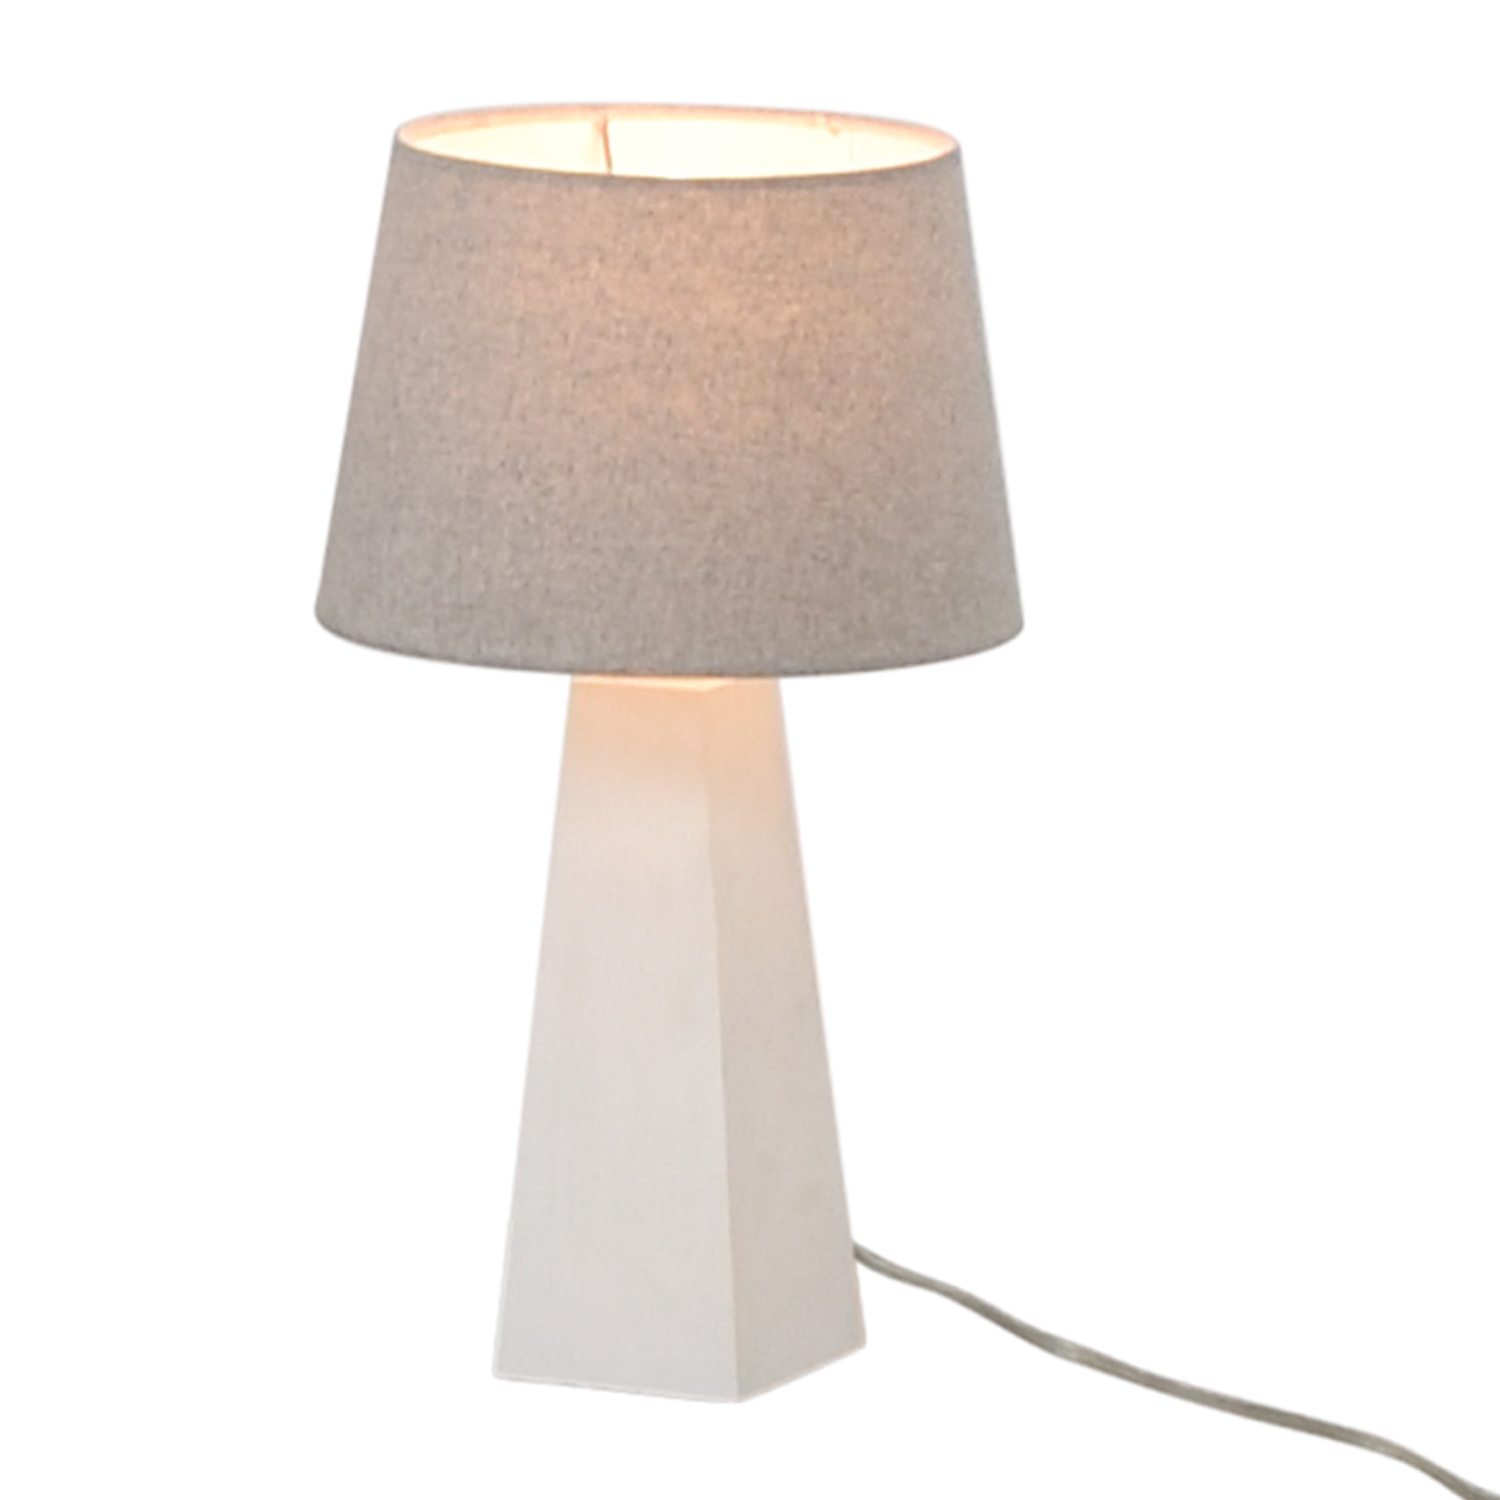 Target Target White Base with Silver Shade Lamp second hand